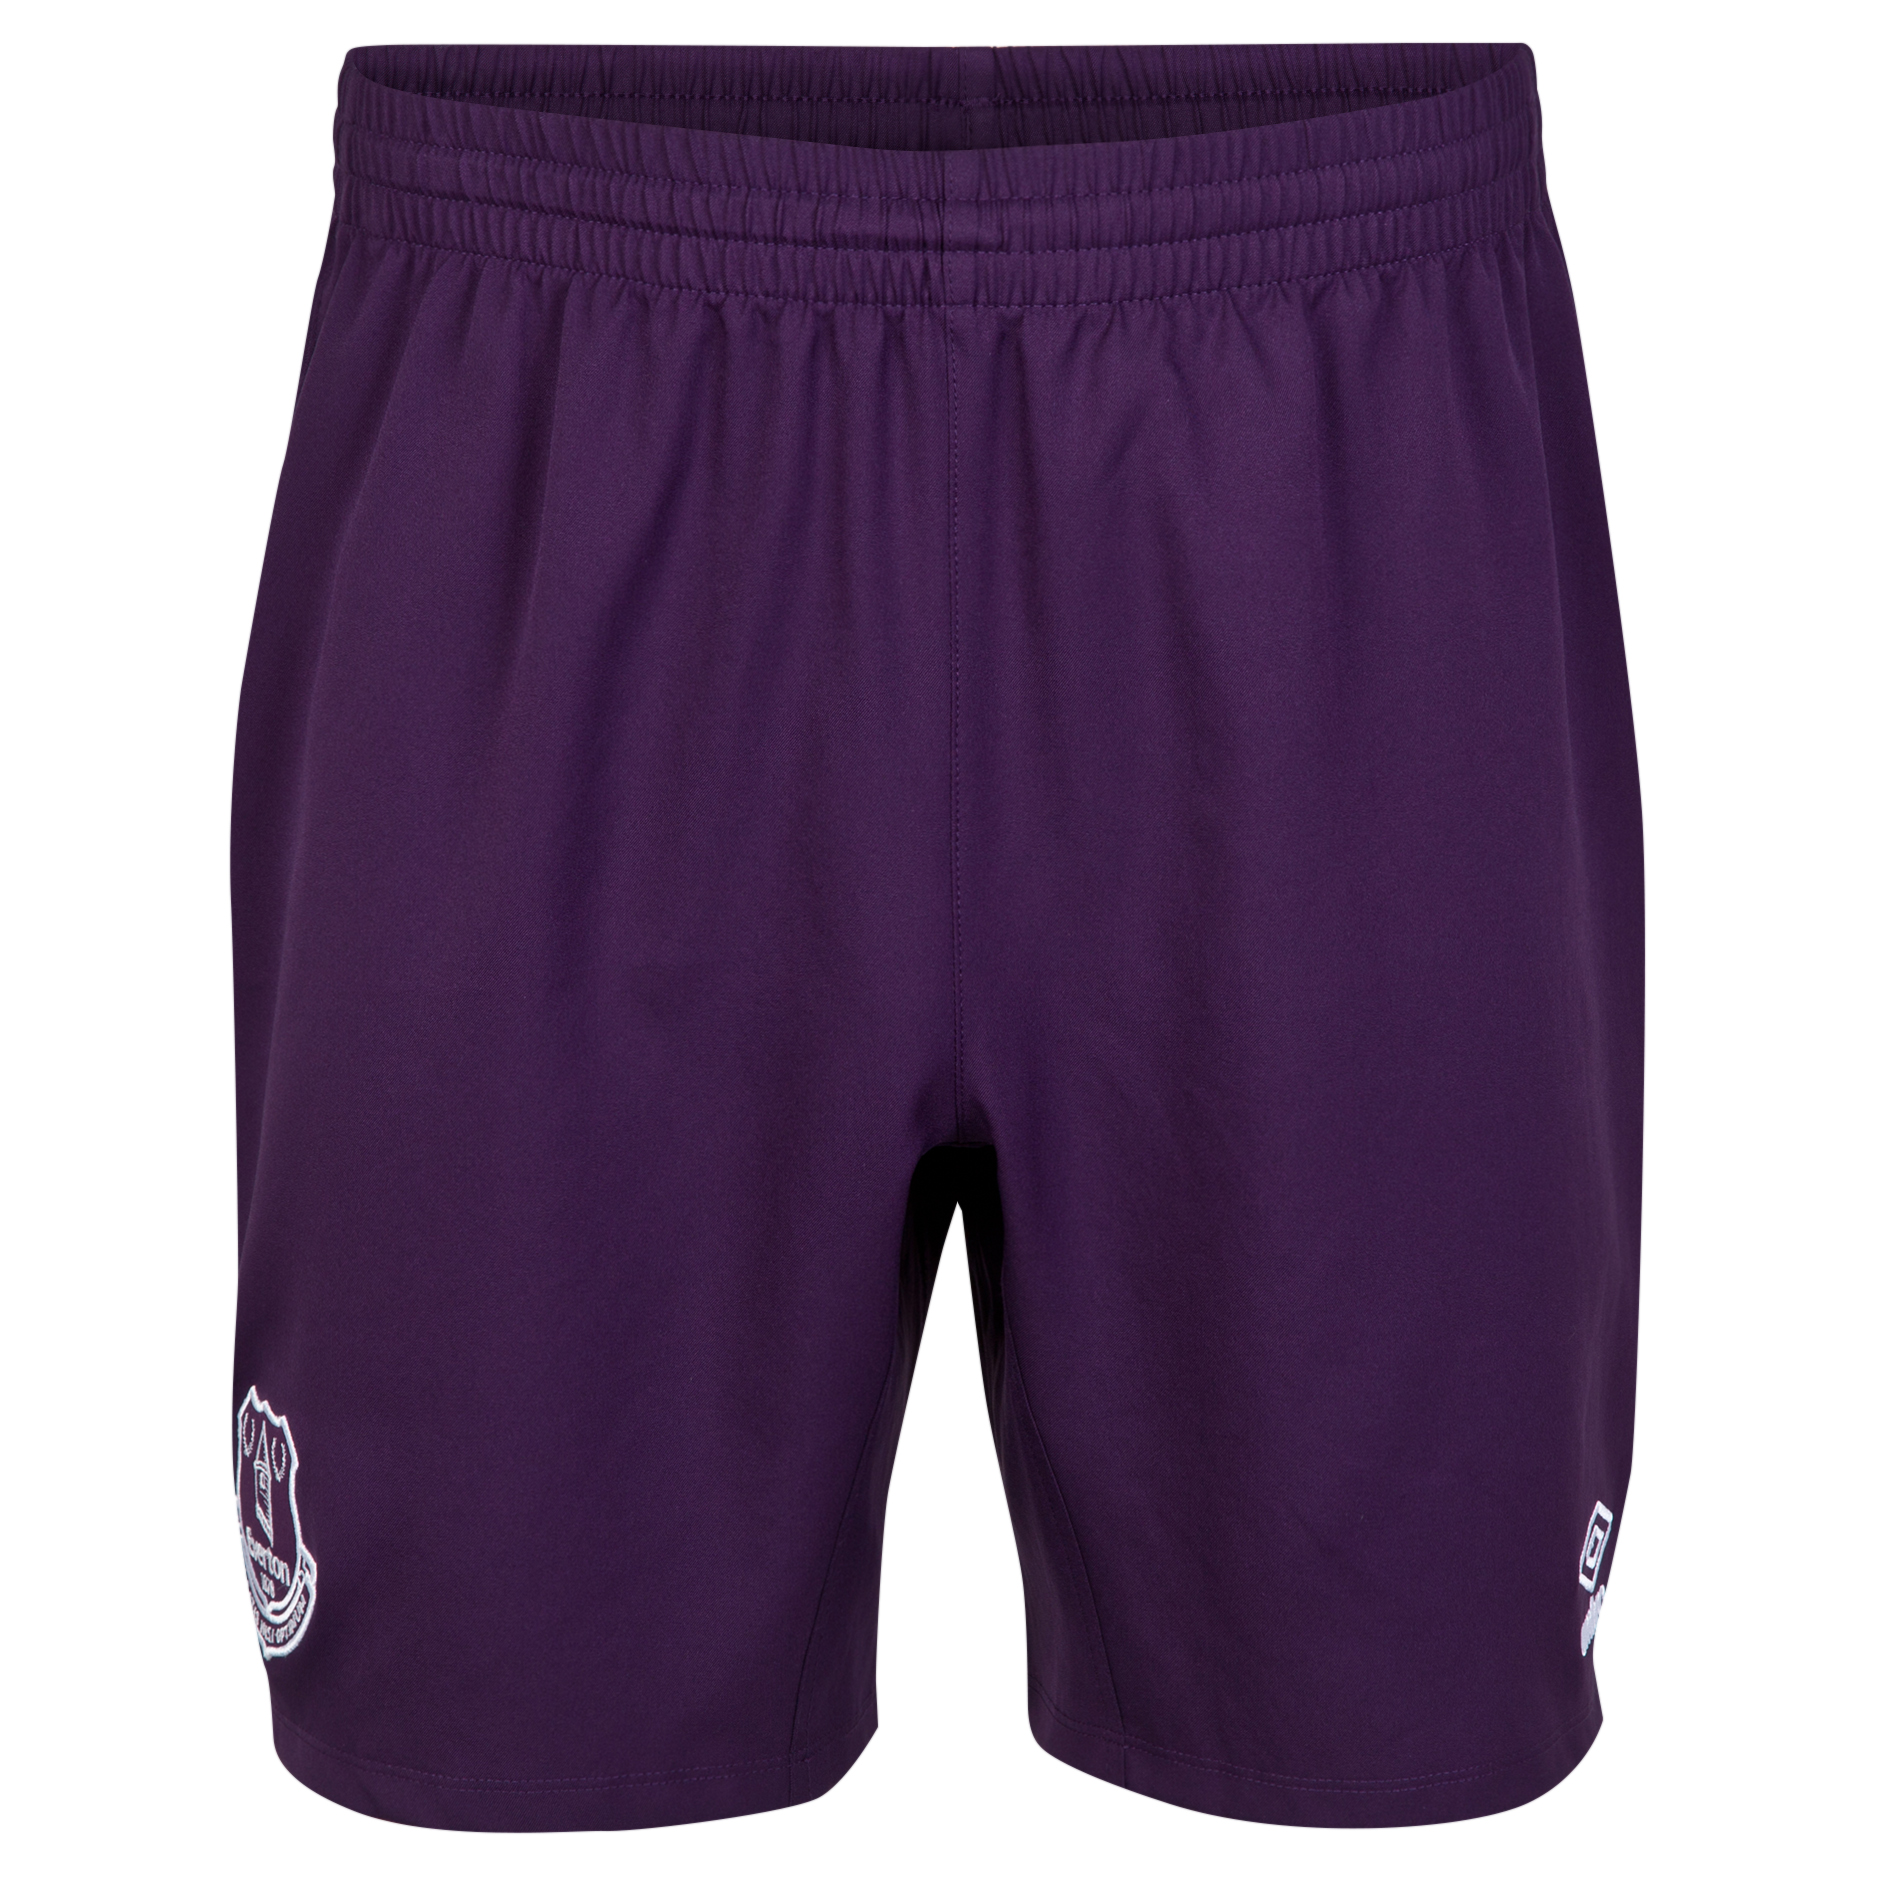 Everton 3rd Short 2014/15